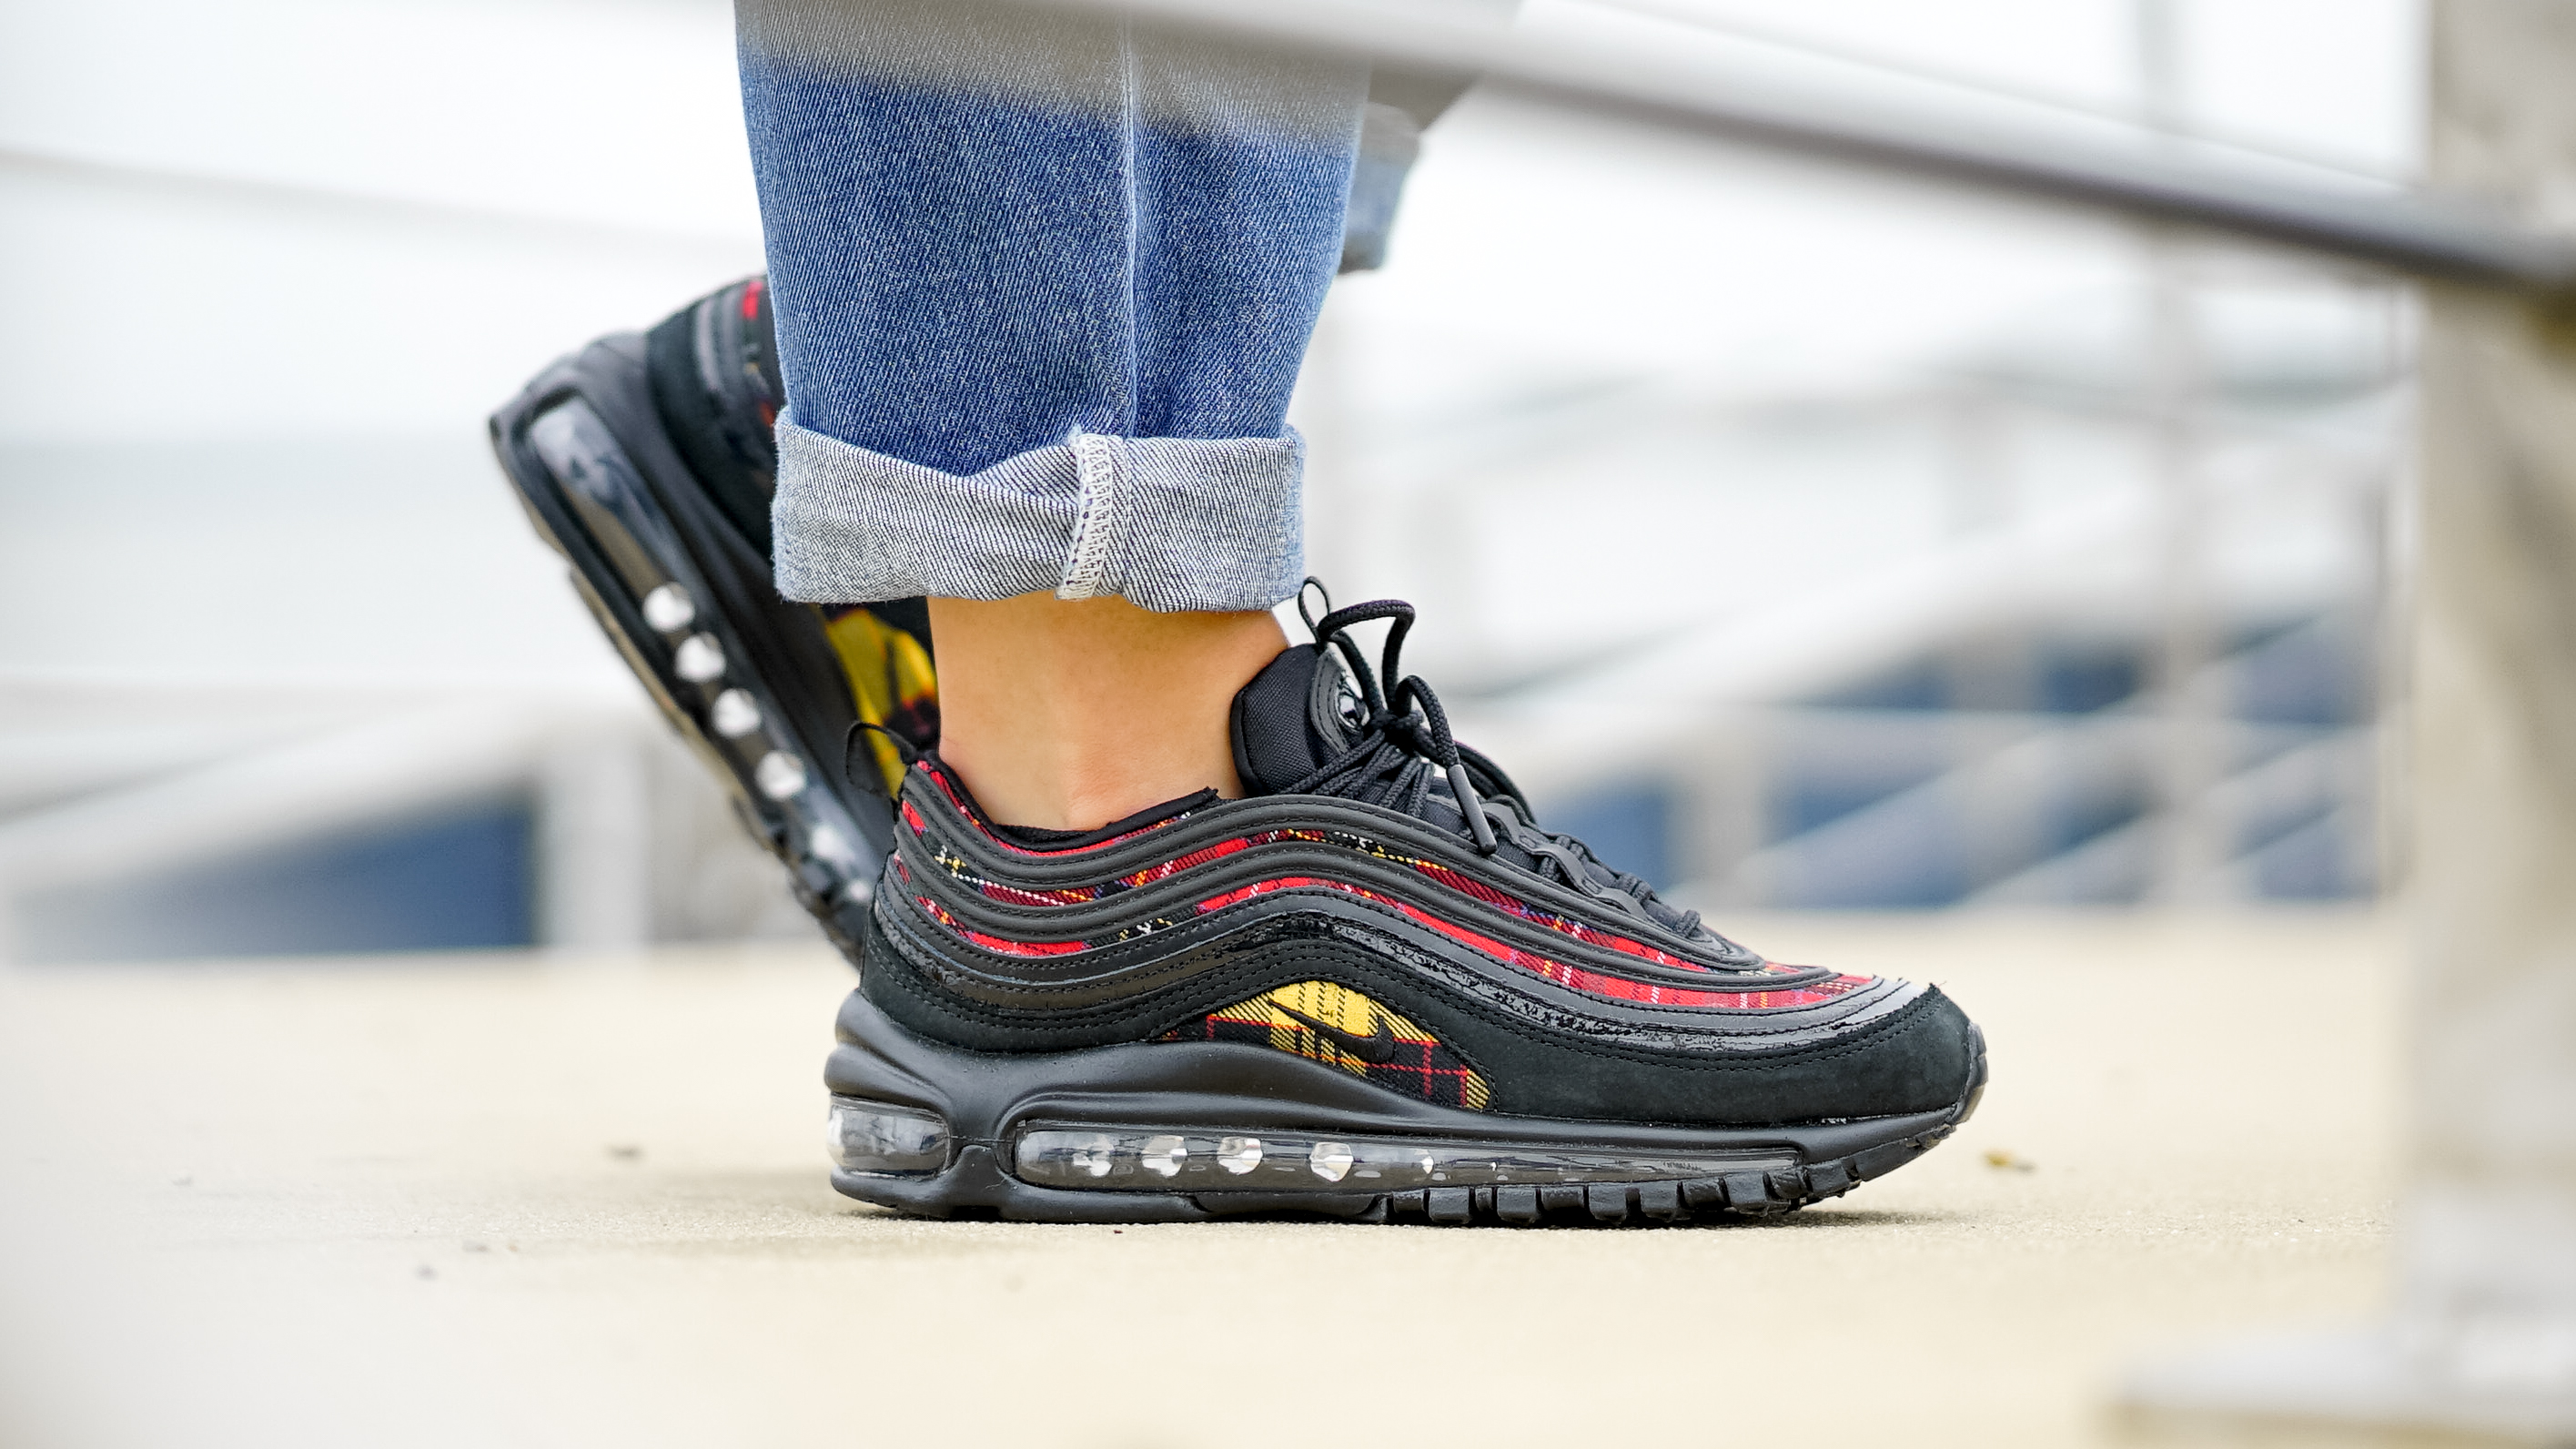 separation shoes 1f0be 76de1 An Exclusive On Foot Look At Nike s Air Max 97